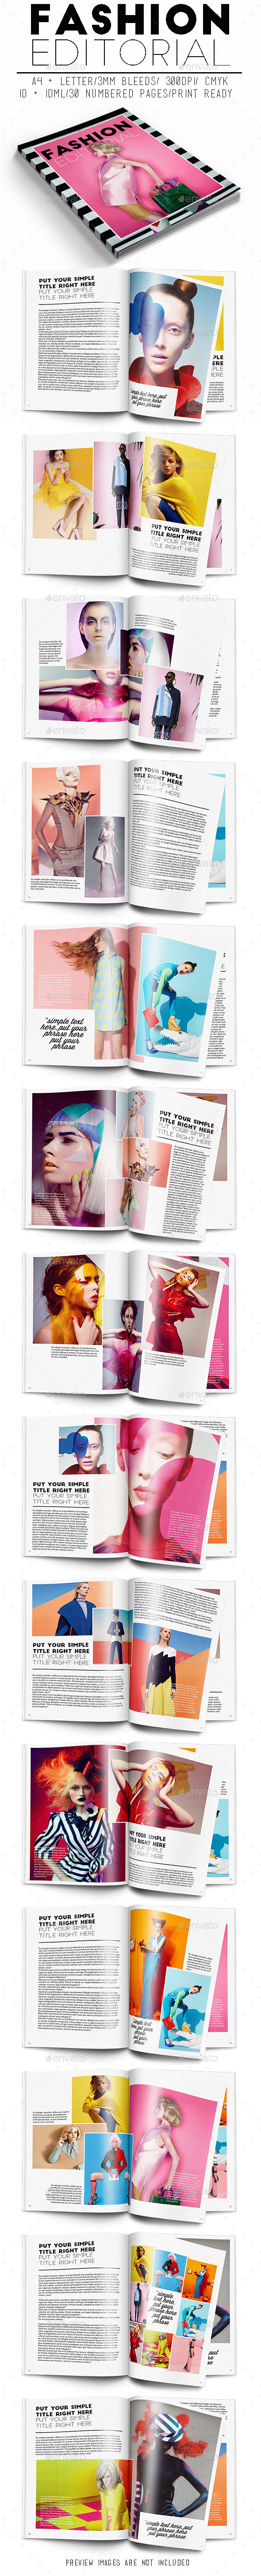 Fashion Editorial - Magazines Print Templates